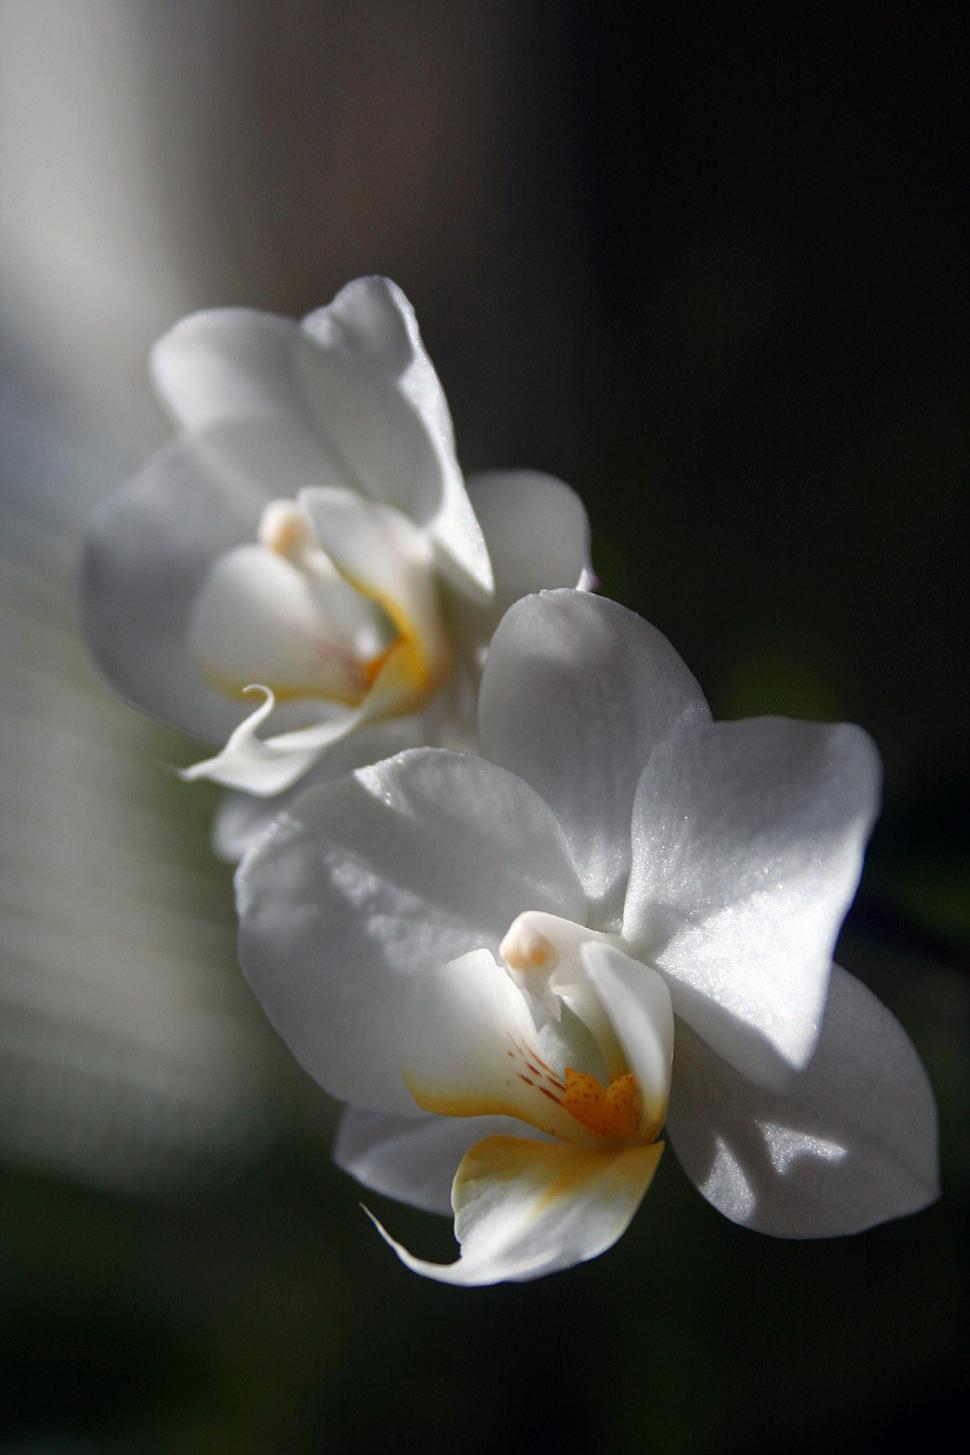 Download Free Stock HD Photo of White Orchid Flowers Against Dark Backdrop Online